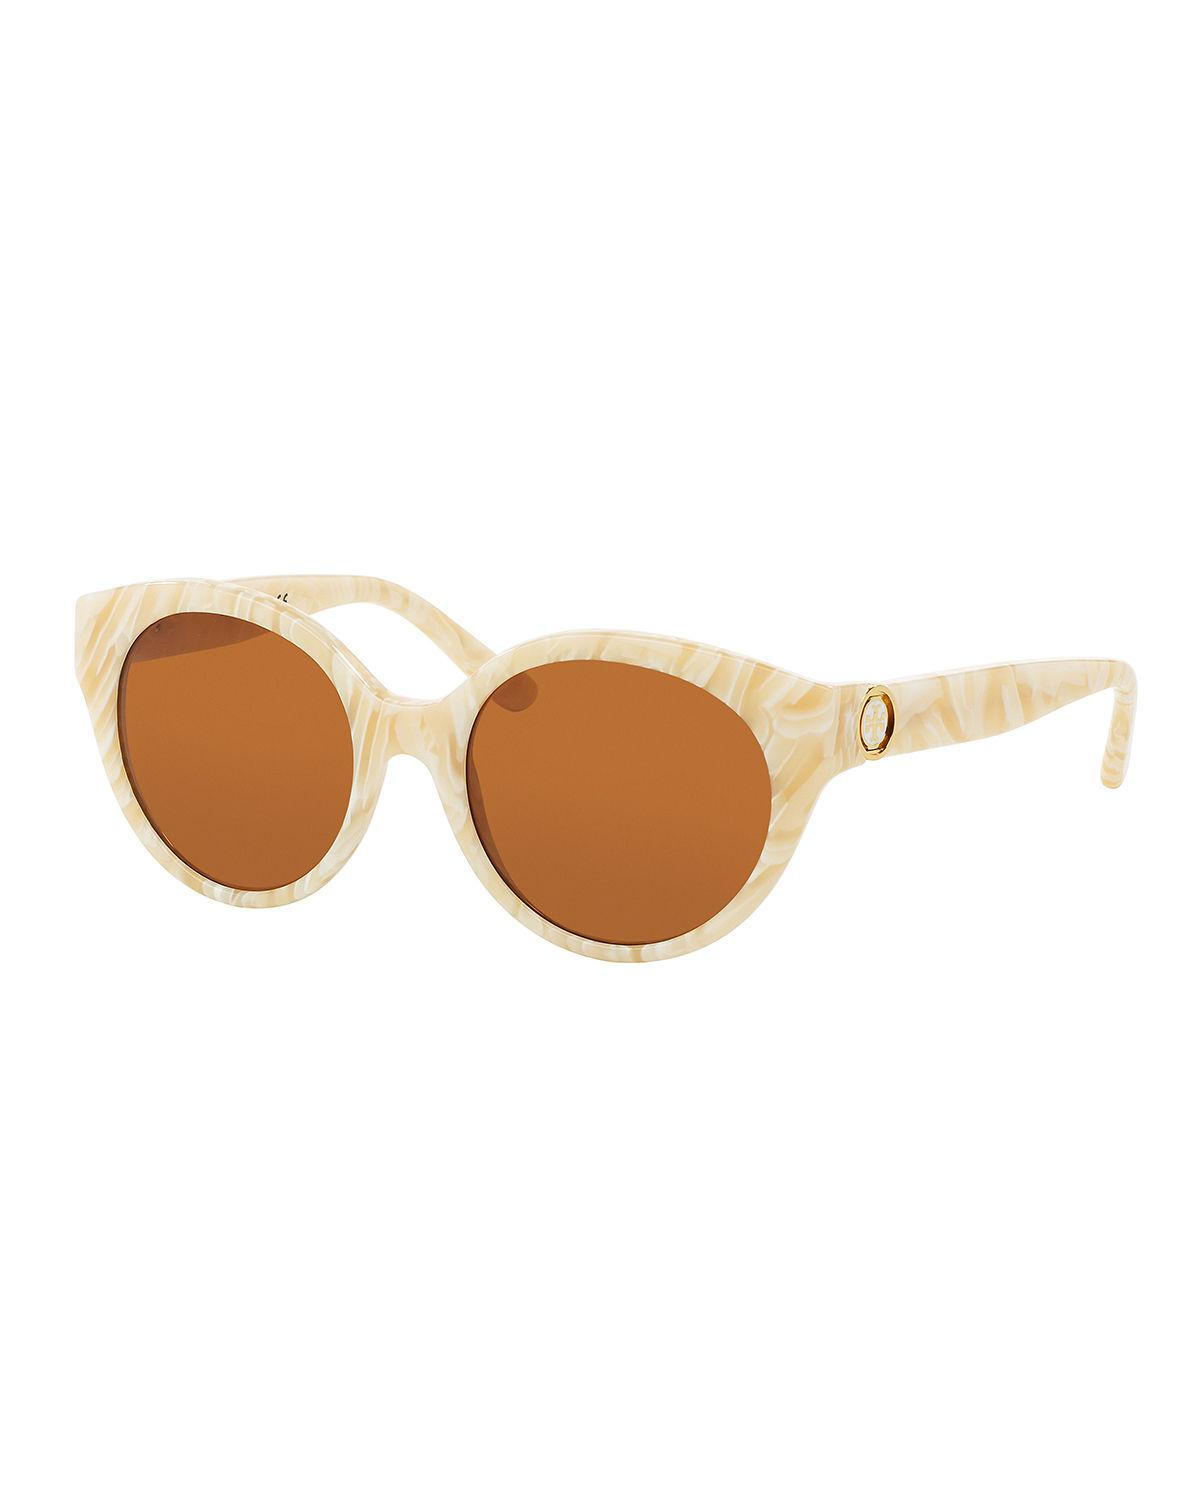 b912551a3d620 Lyst - Tory Burch Rounded Logo-temple Plastic Sunglasses in White